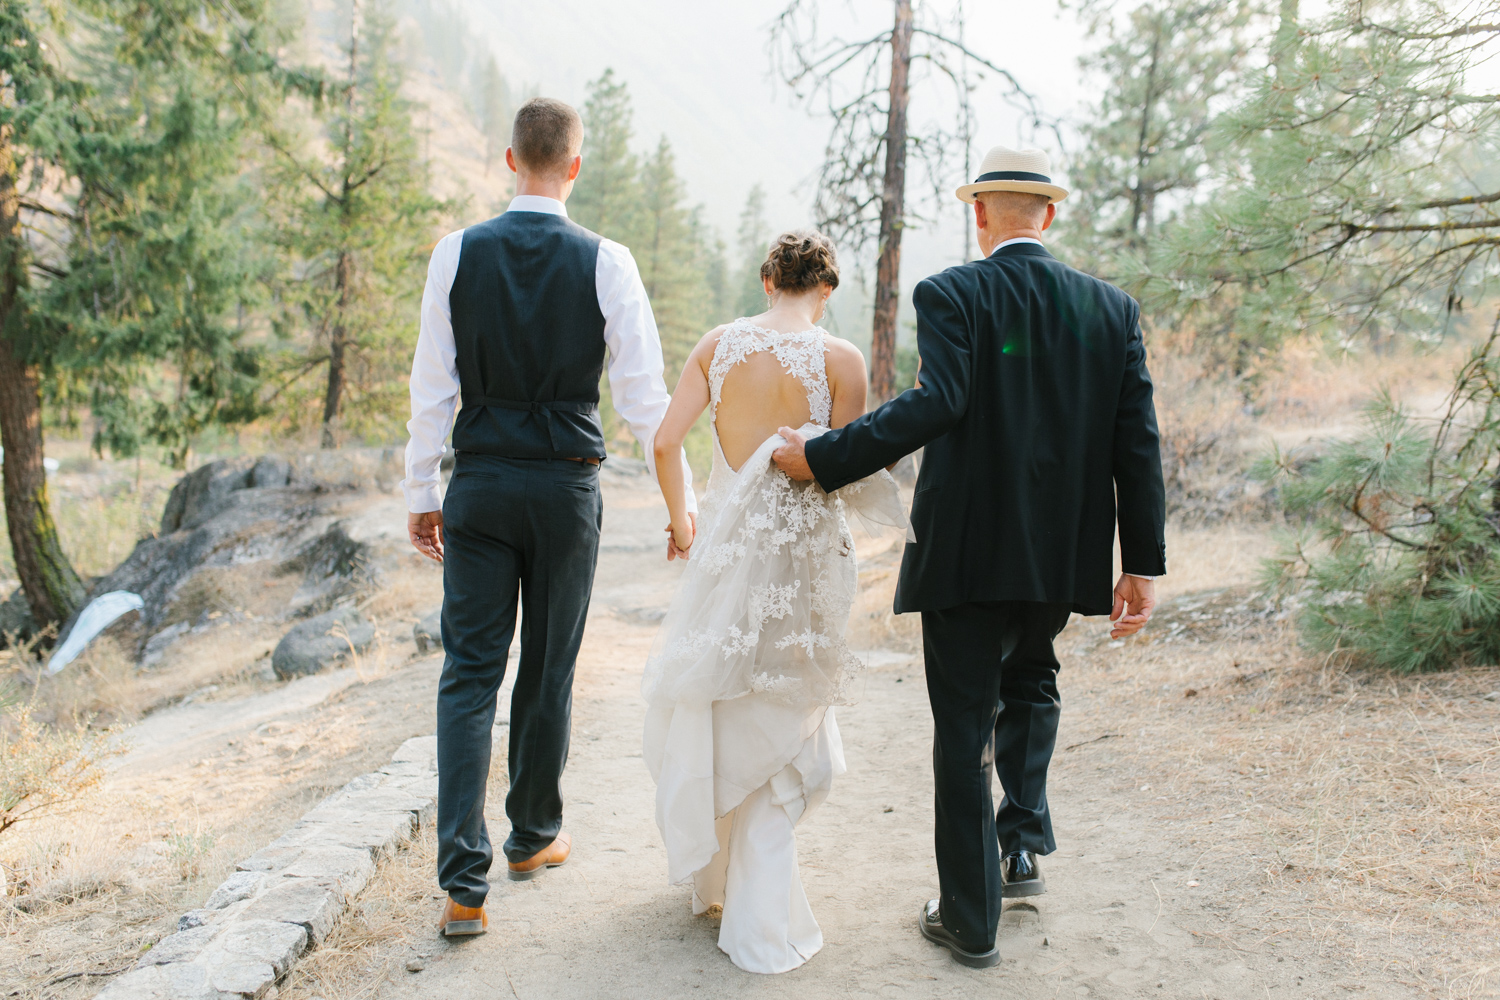 Grey and White Wedding in the Mountains of Leavenworth, Washington | Sleeping Lady | Classic and Timeless Wedding | VSCO | Stunning Mountain Top Bride and Groom Portraits on the Icicle River.jpg-3405.jpg